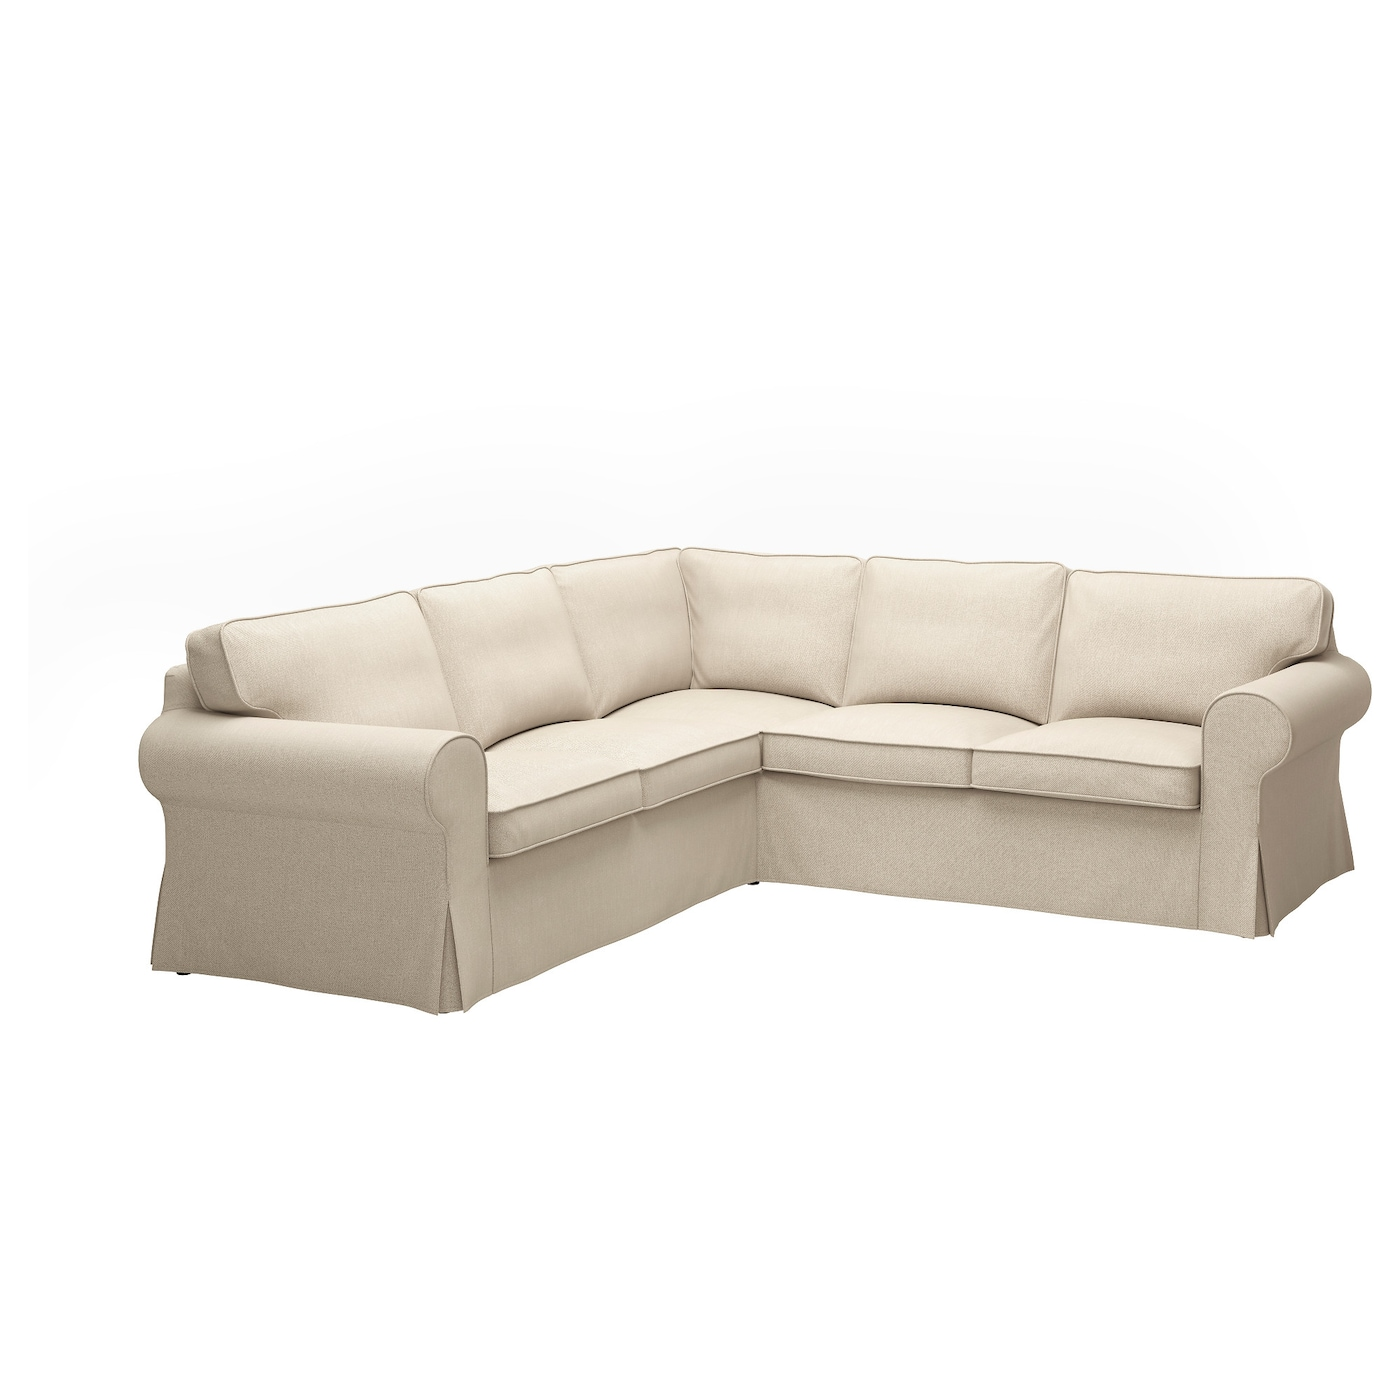 Ecksofa ikea  Free try out of Hybride Sofa from Ligne Roset in 3D, VR and AR